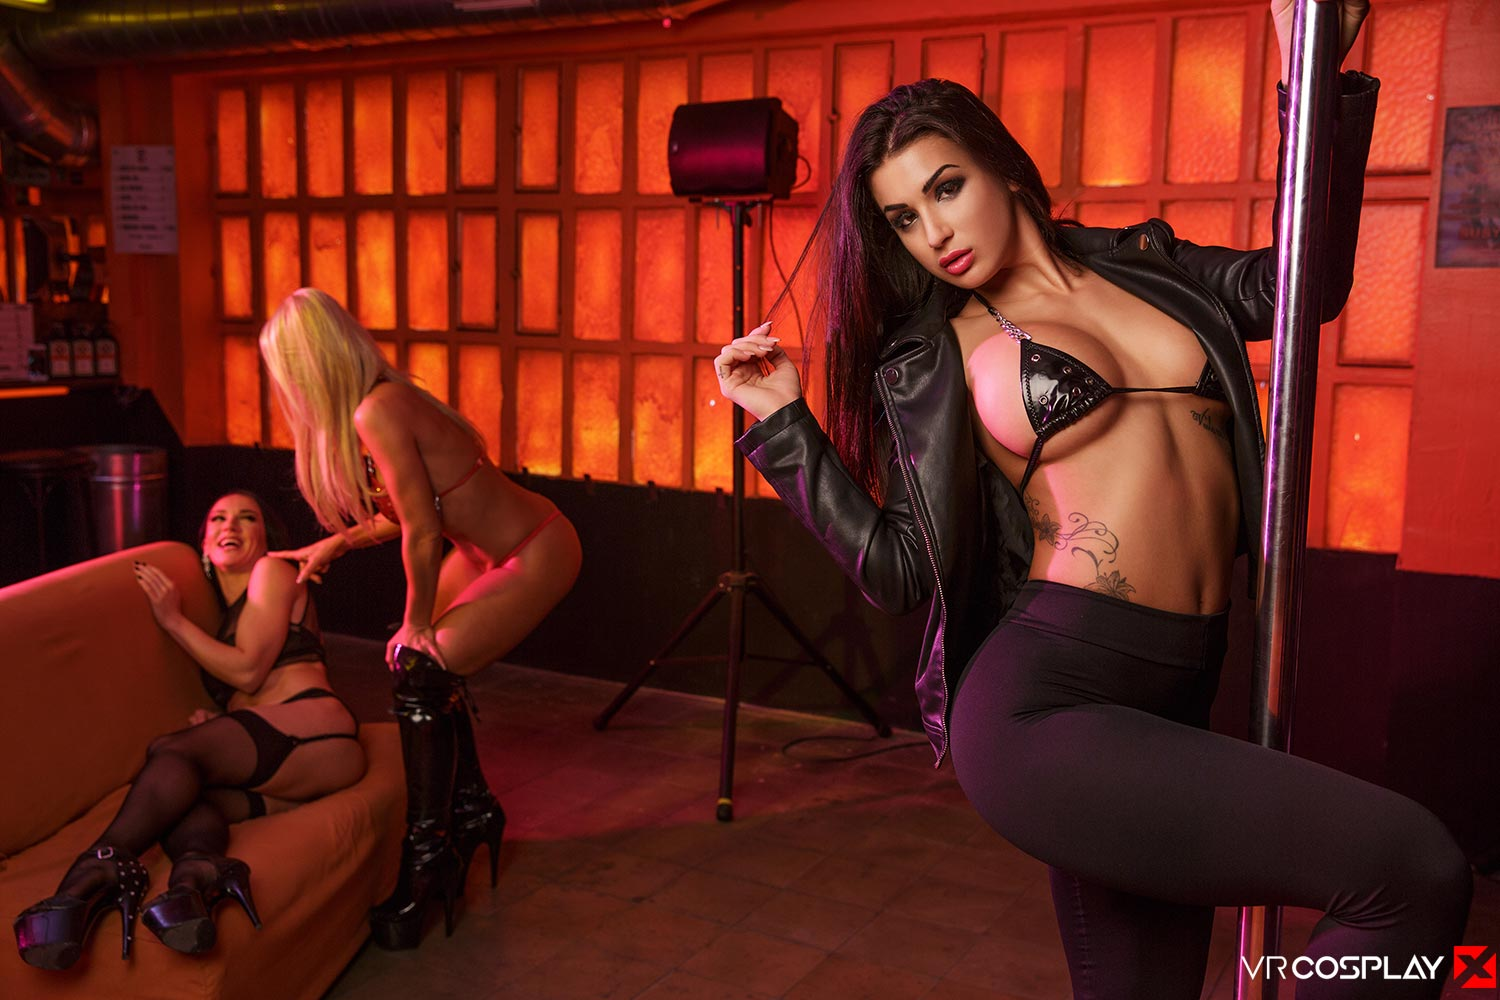 GTA VR Cosplay Strip Club